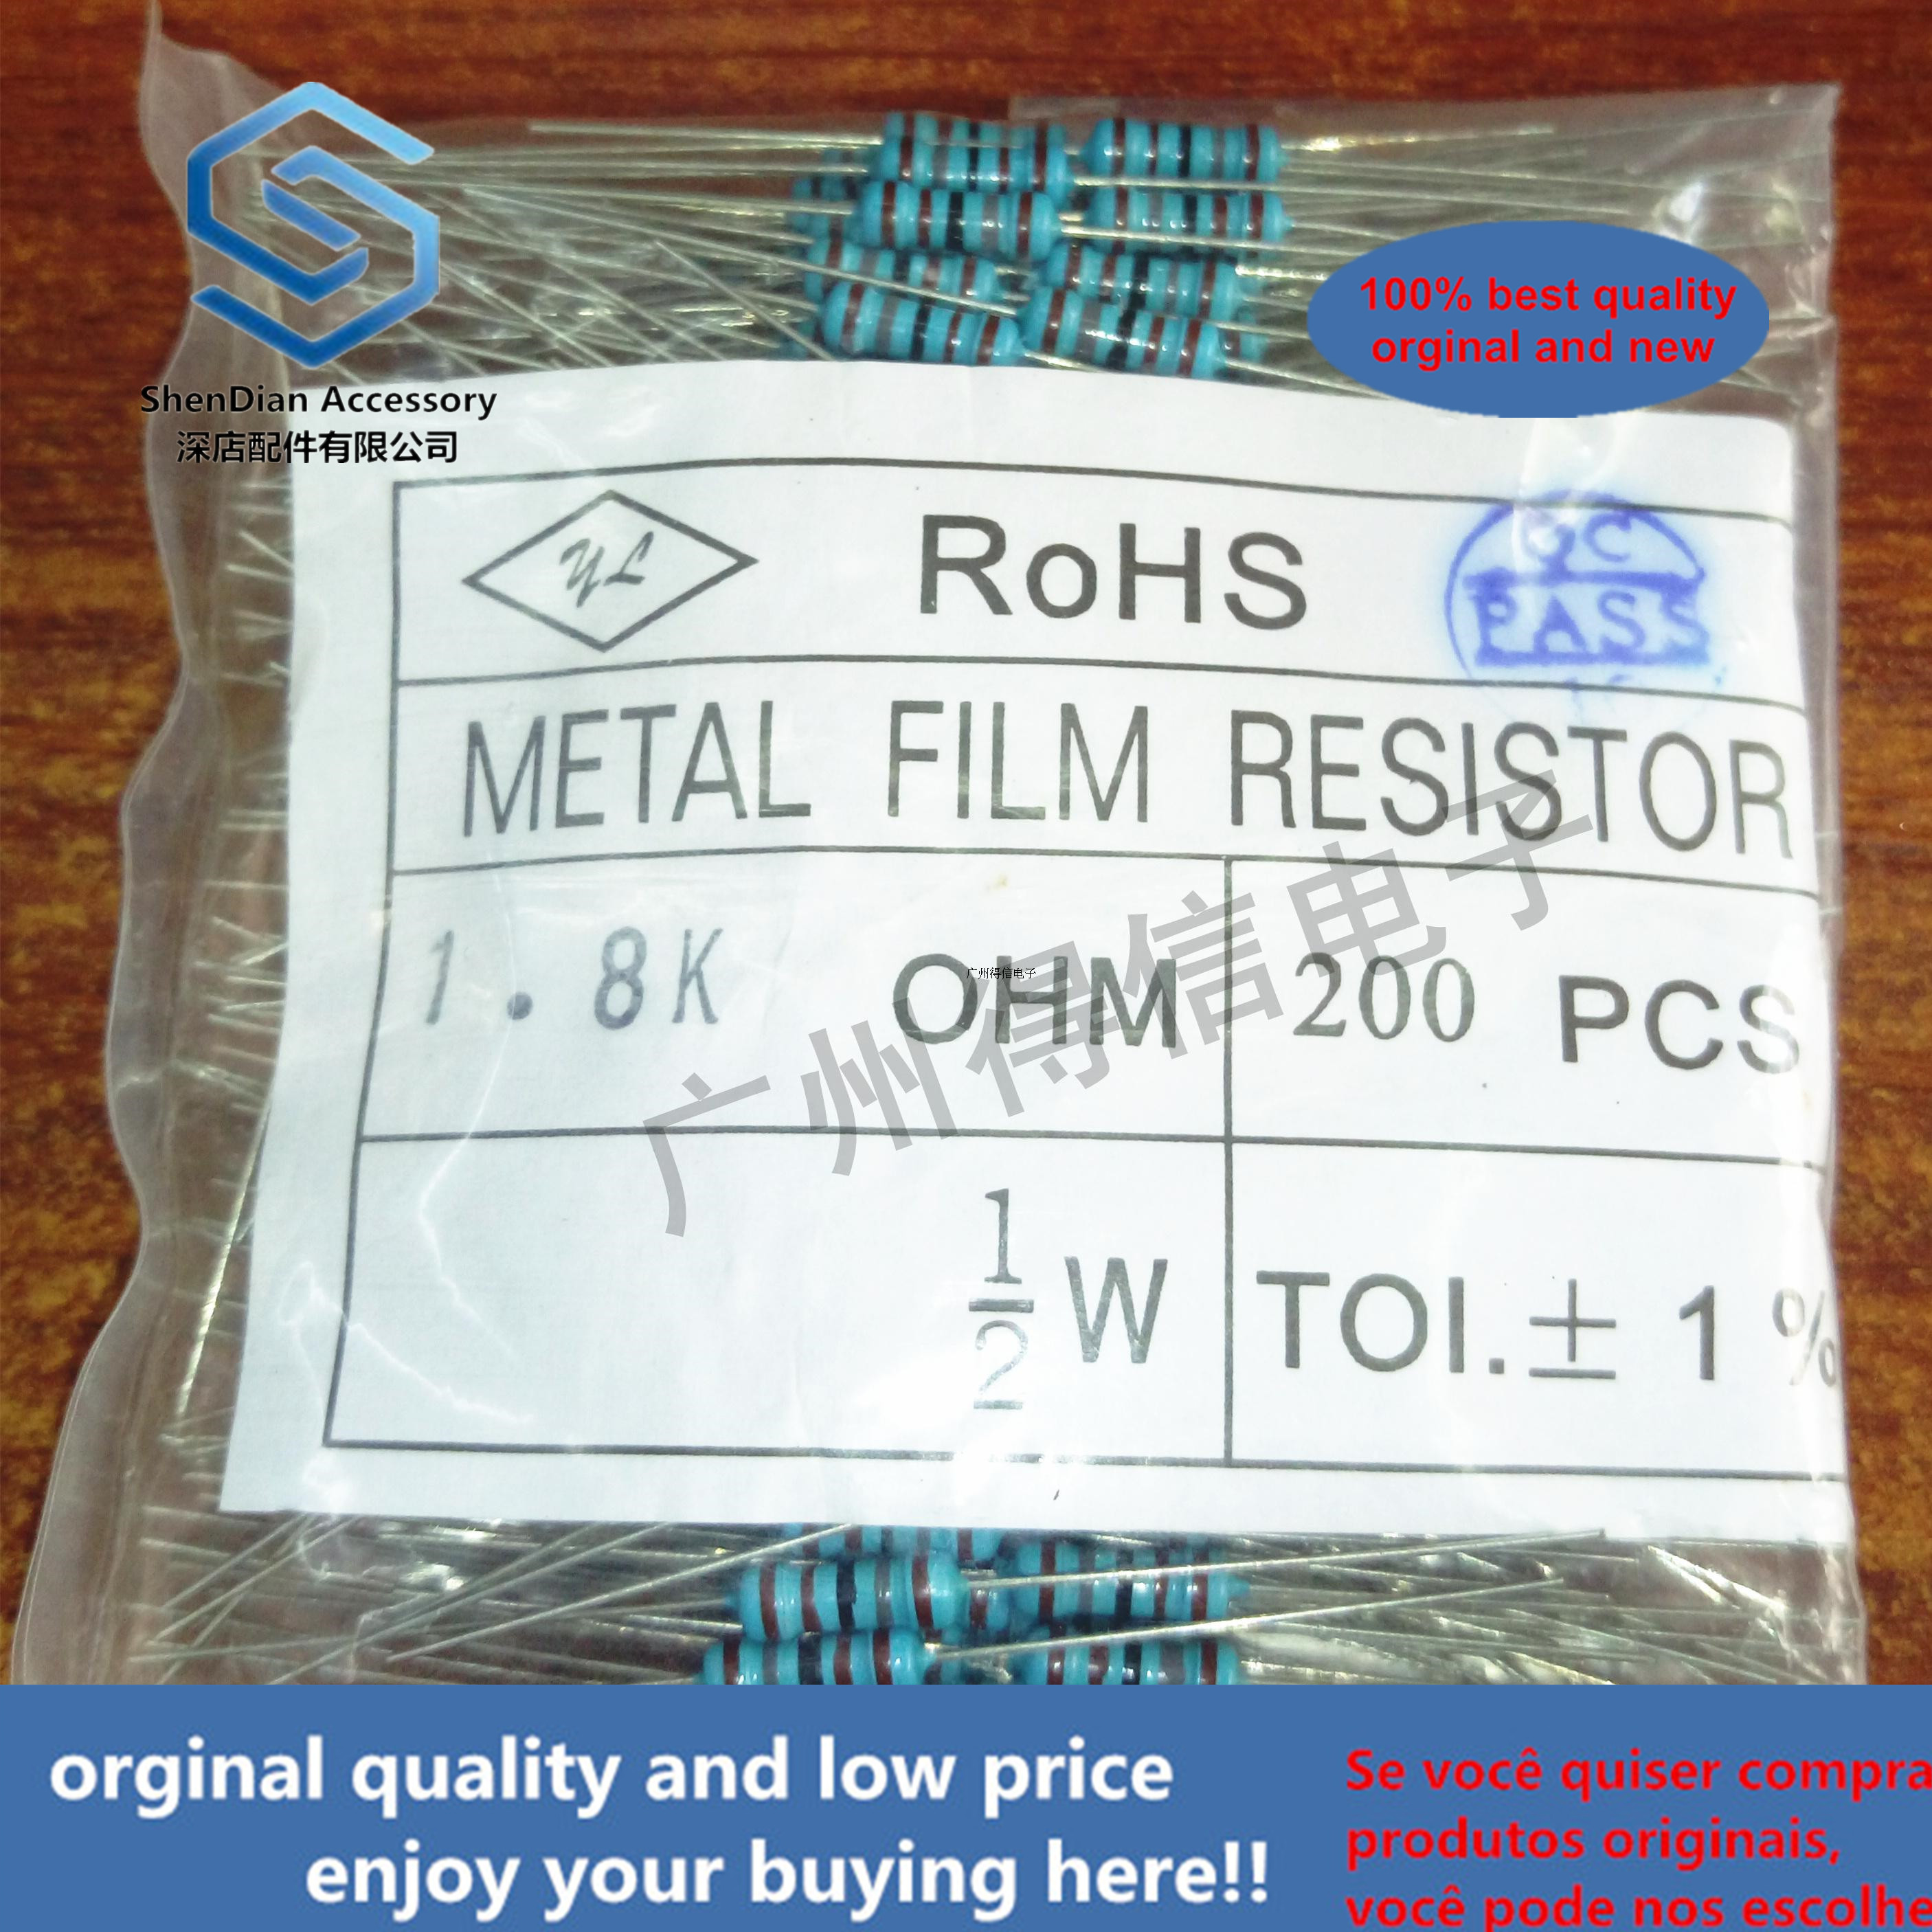 200pcs 1 / 2W 1.8R 1.8 Euro 1% Brand New Metal Film Iron Foot Resistor Bag Pack Of 200